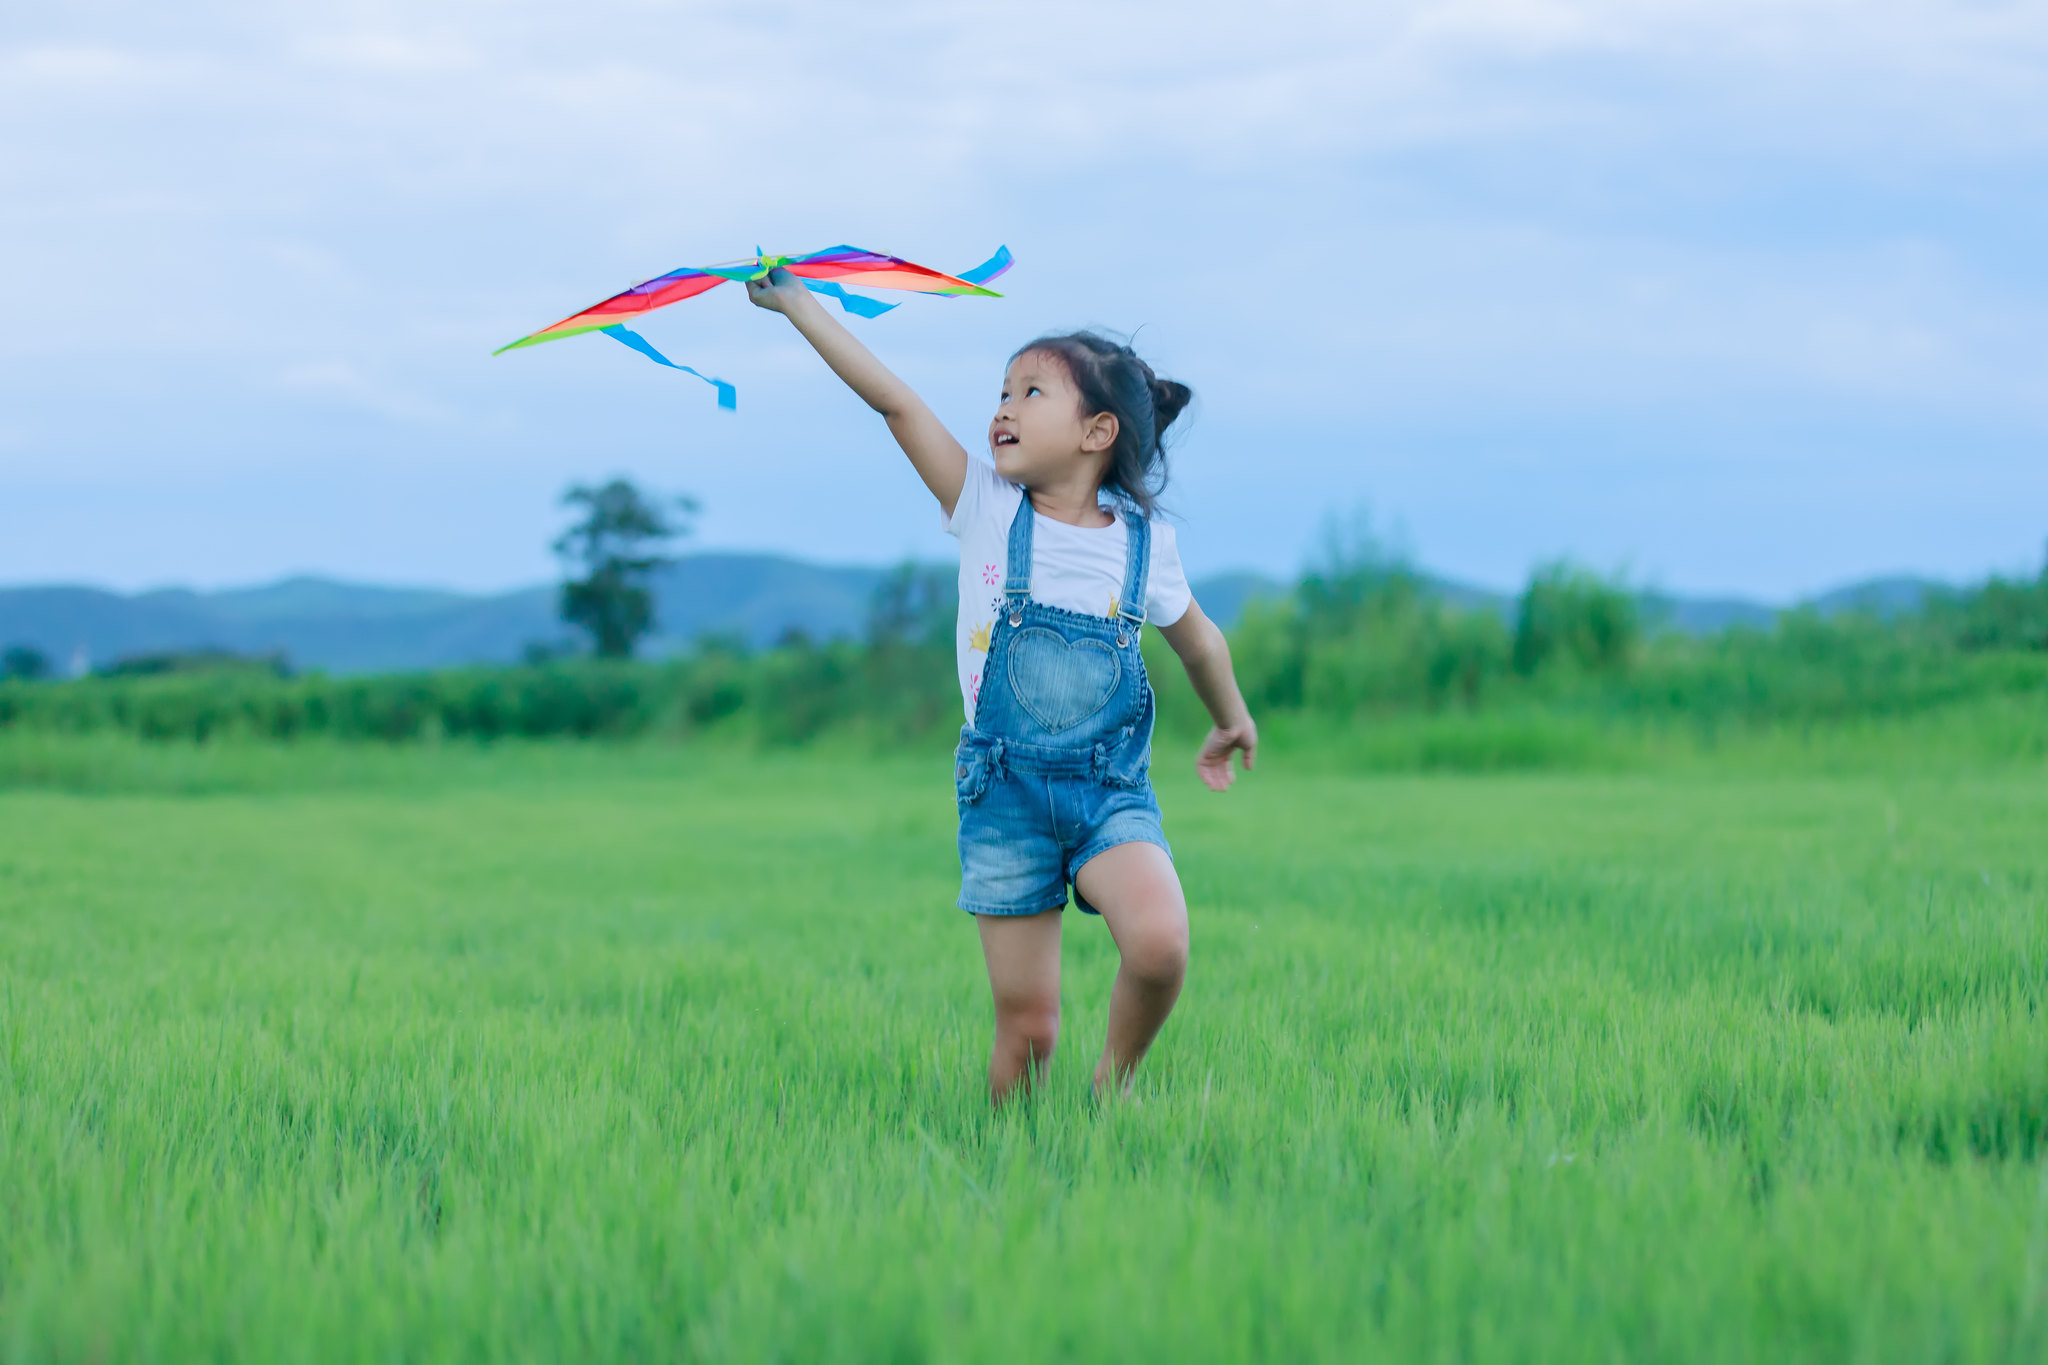 Child in a field enjoying a kids festival